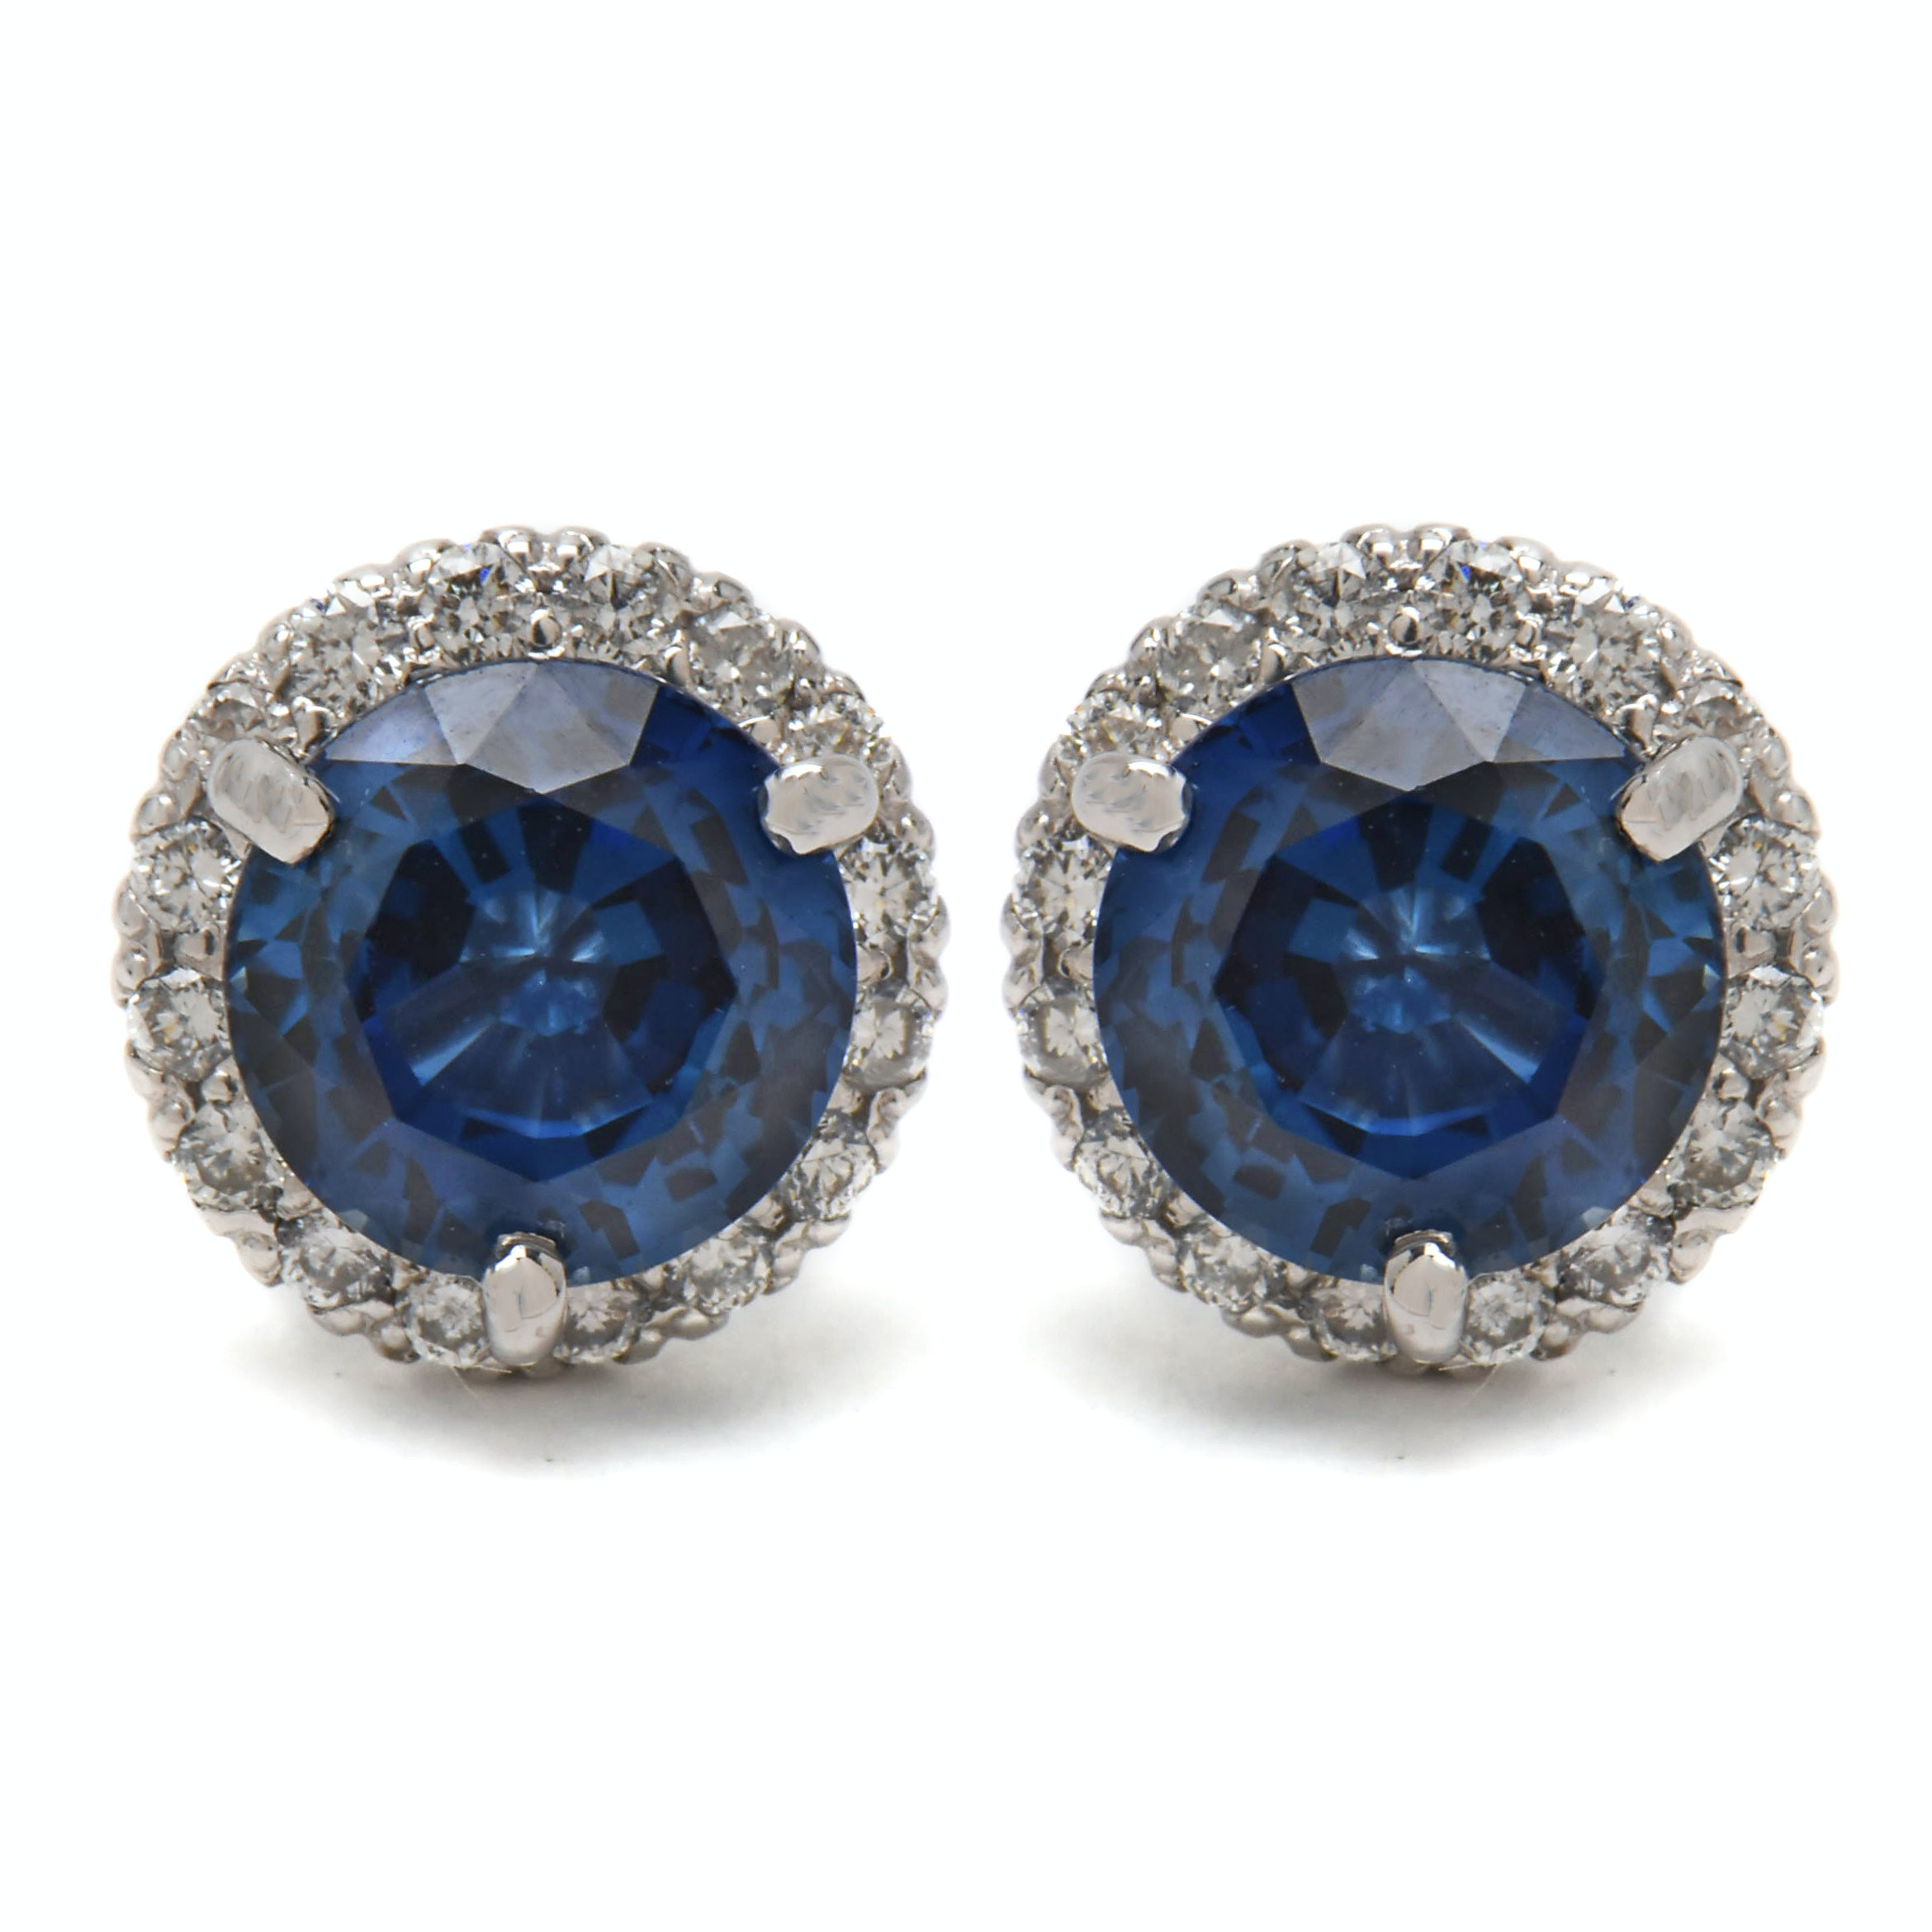 18K White Gold 3.00 CTW Sapphire and Diamond Halo Stud Earrings with AGL Report